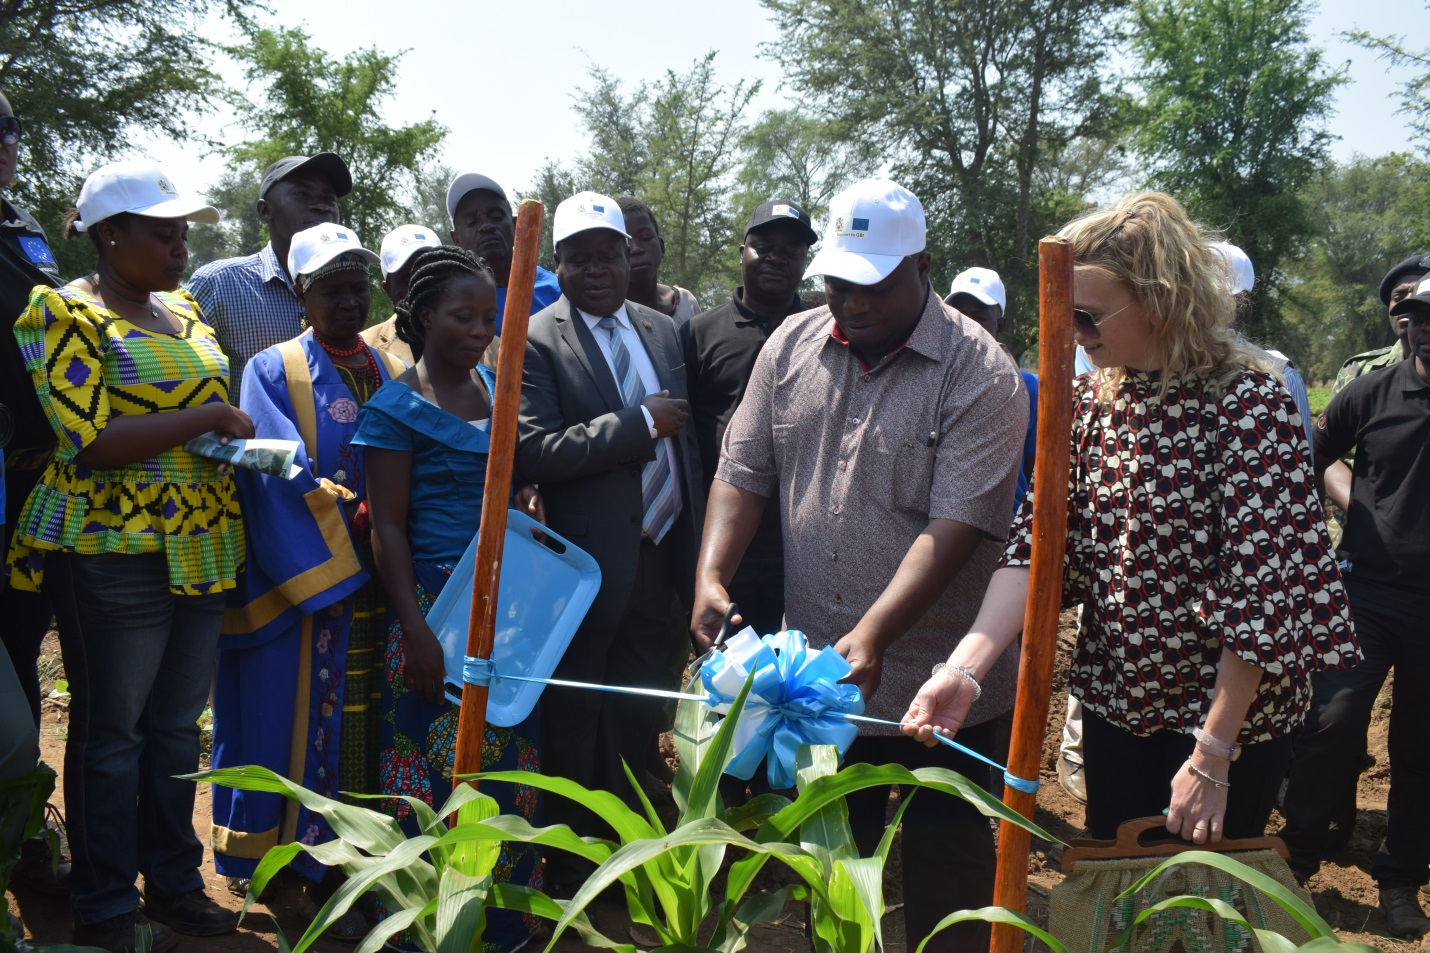 Hon. Kondwani Nankhumwa, Minister of Agriculture, Irrigation and Water Development and Beatrice Neri, EU Head of Sustainable Agriculture Jointly cut a ribbon during Commissioning of Tchanga Irrigation Scheme in Dedza